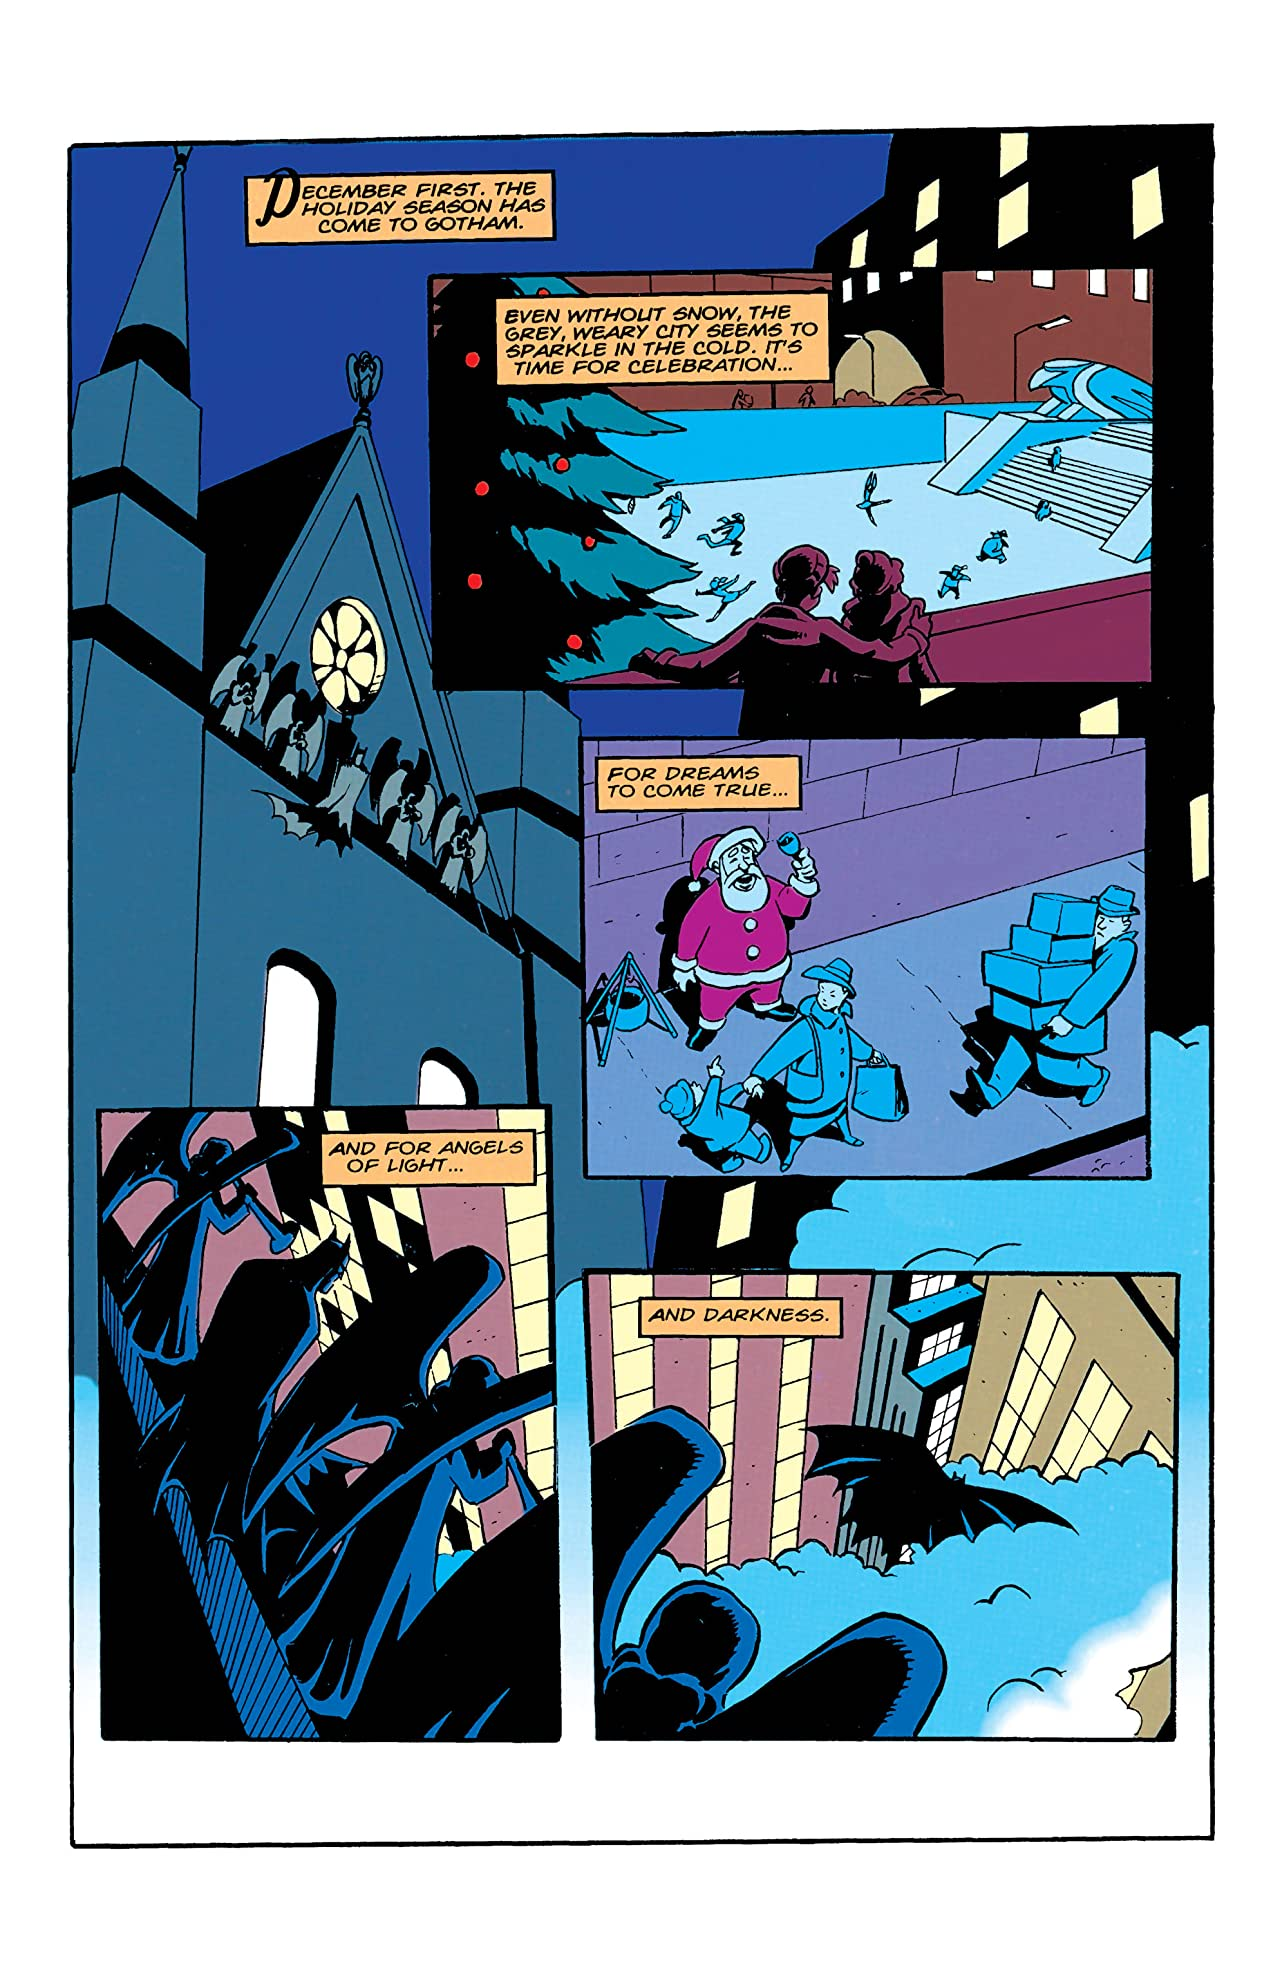 The Batman Adventures Holiday Special (1994) #1